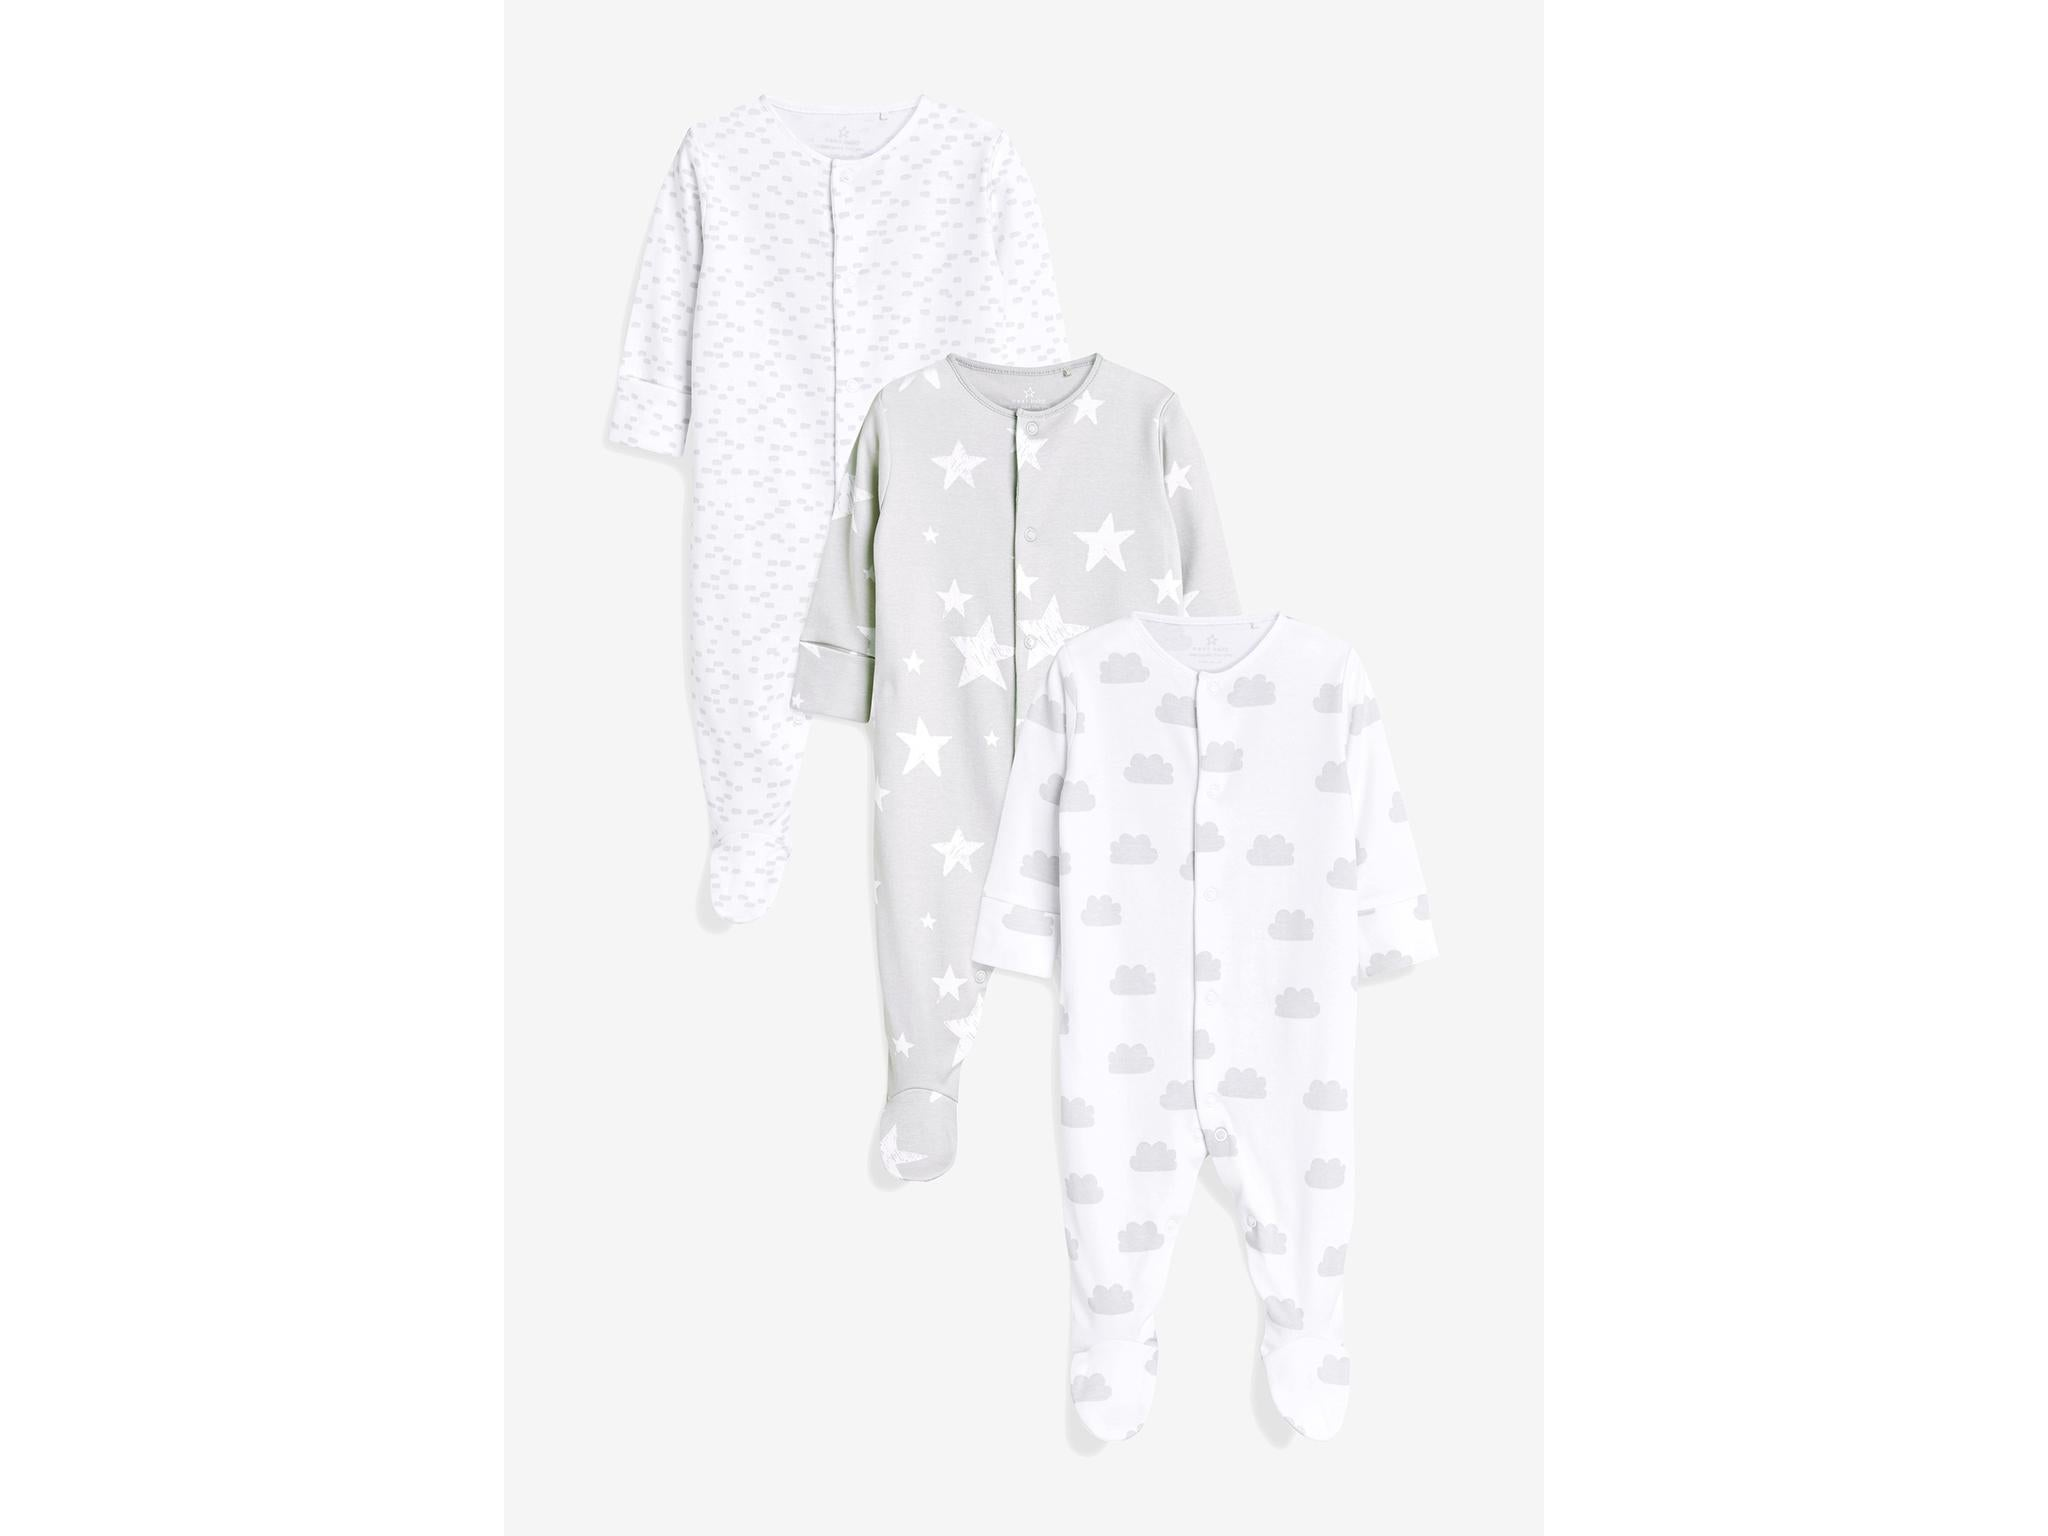 Baby Unisex Babygrow//Vest 100/% Soft Touch Cotton White Long Sleeve Multipack